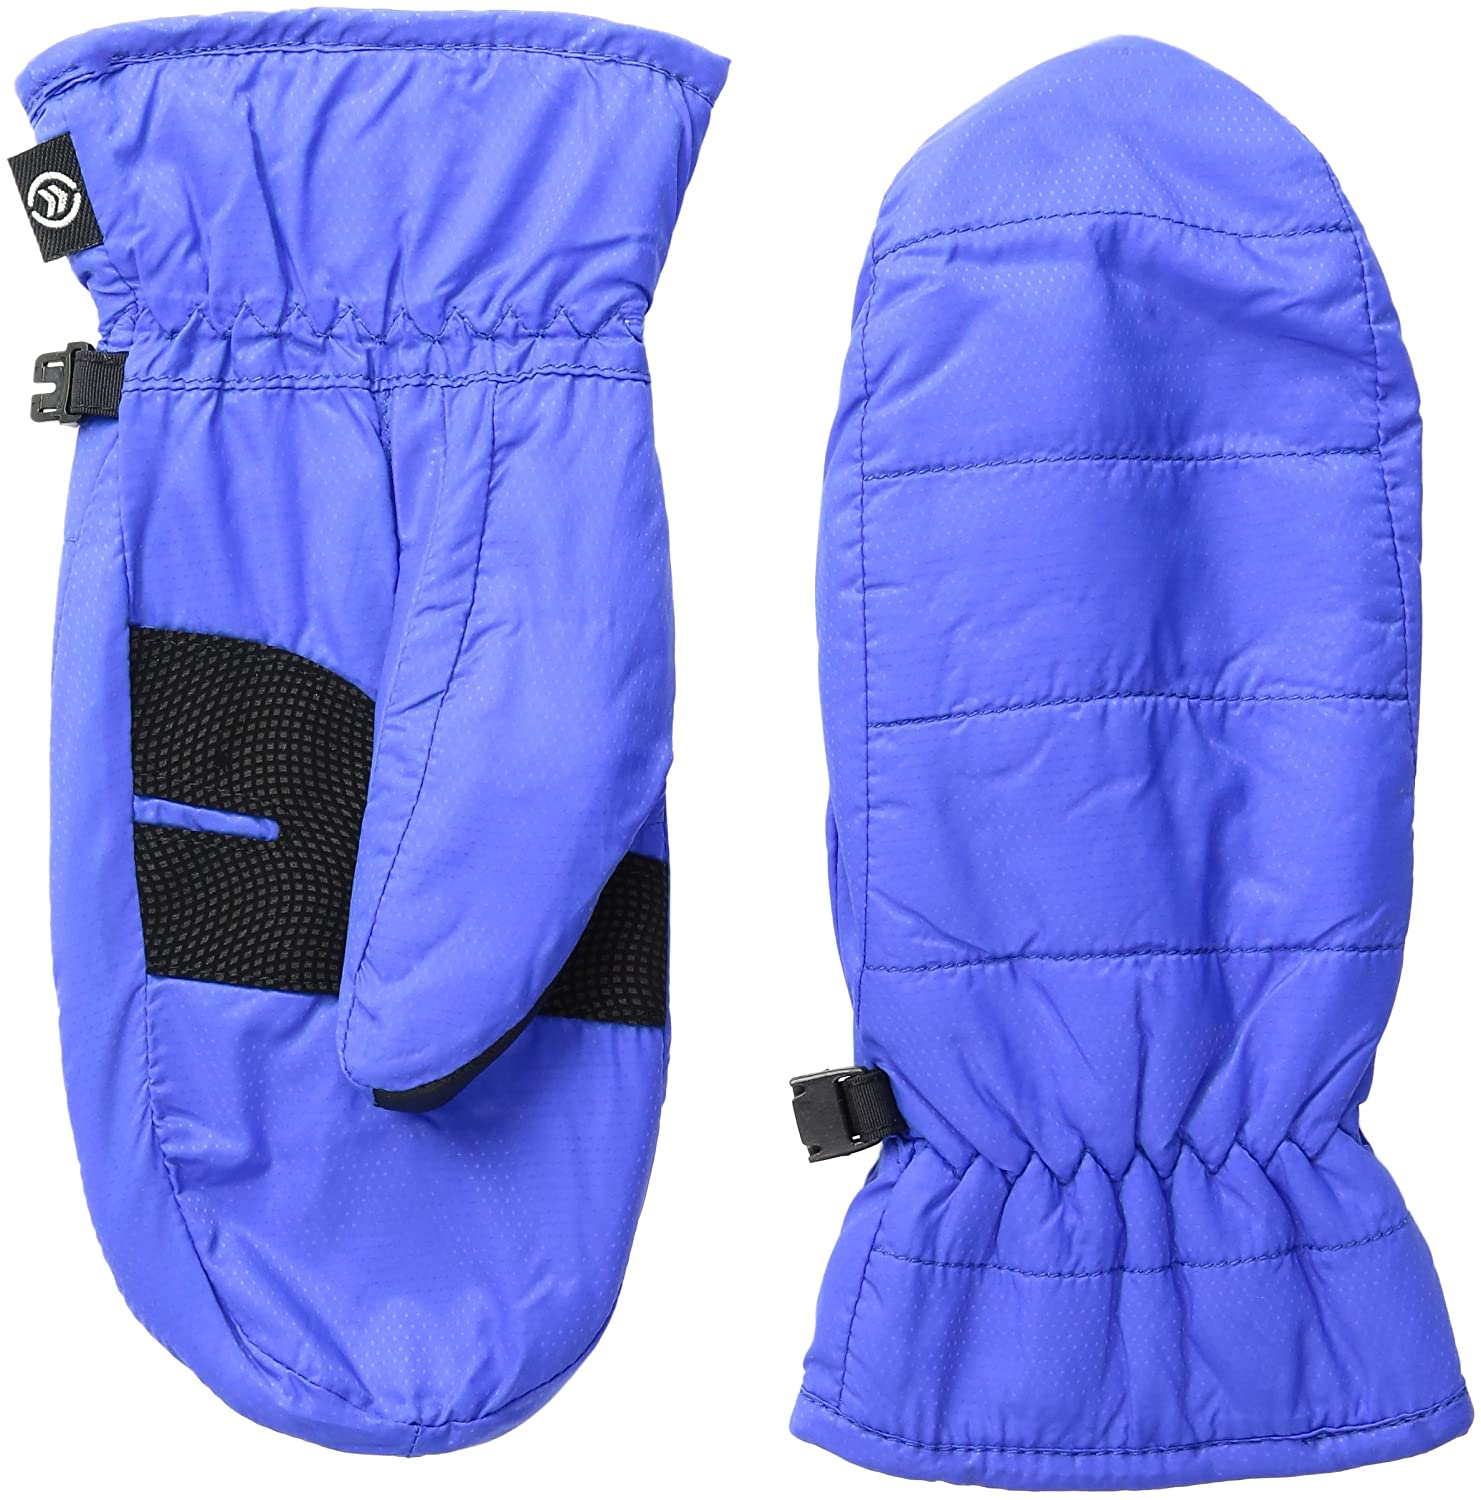 Isotoner Women's Quilted Nylon Mitten with Warm Touch Lining Totes Women's Accessories 40472